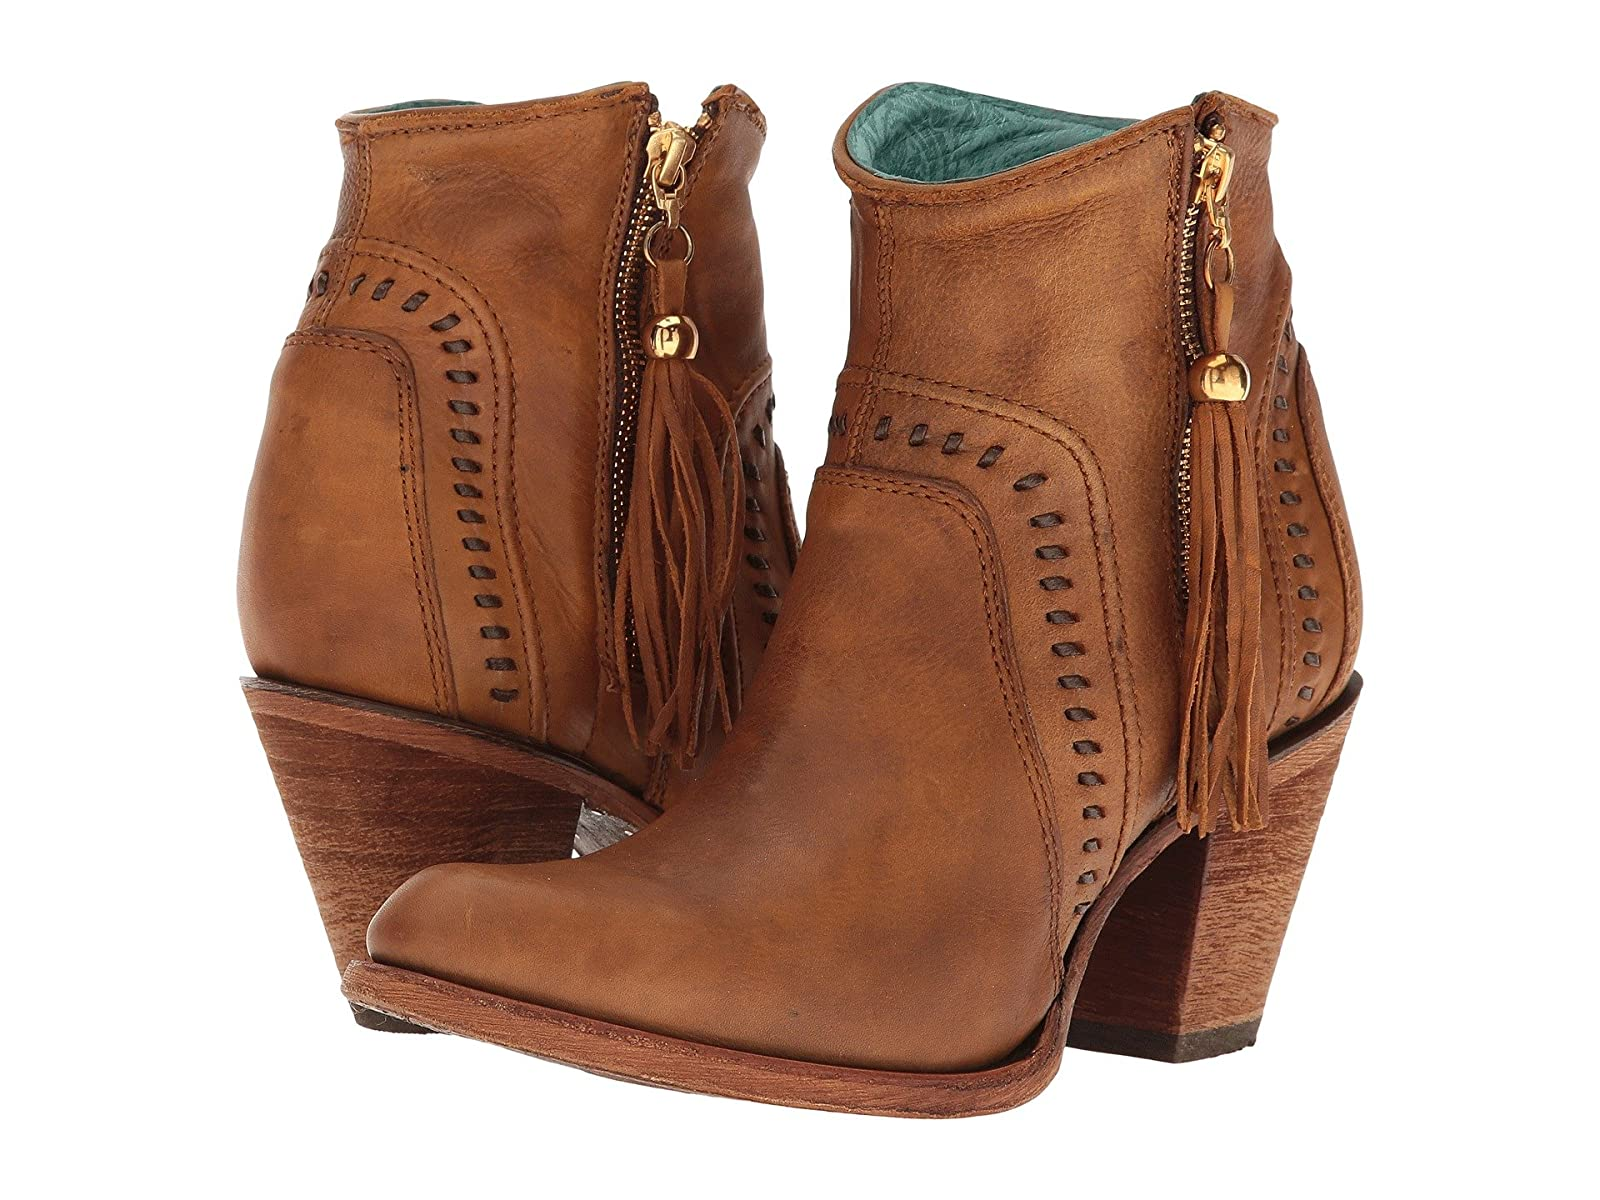 Corral Boots C2905Affordable and distinctive shoes